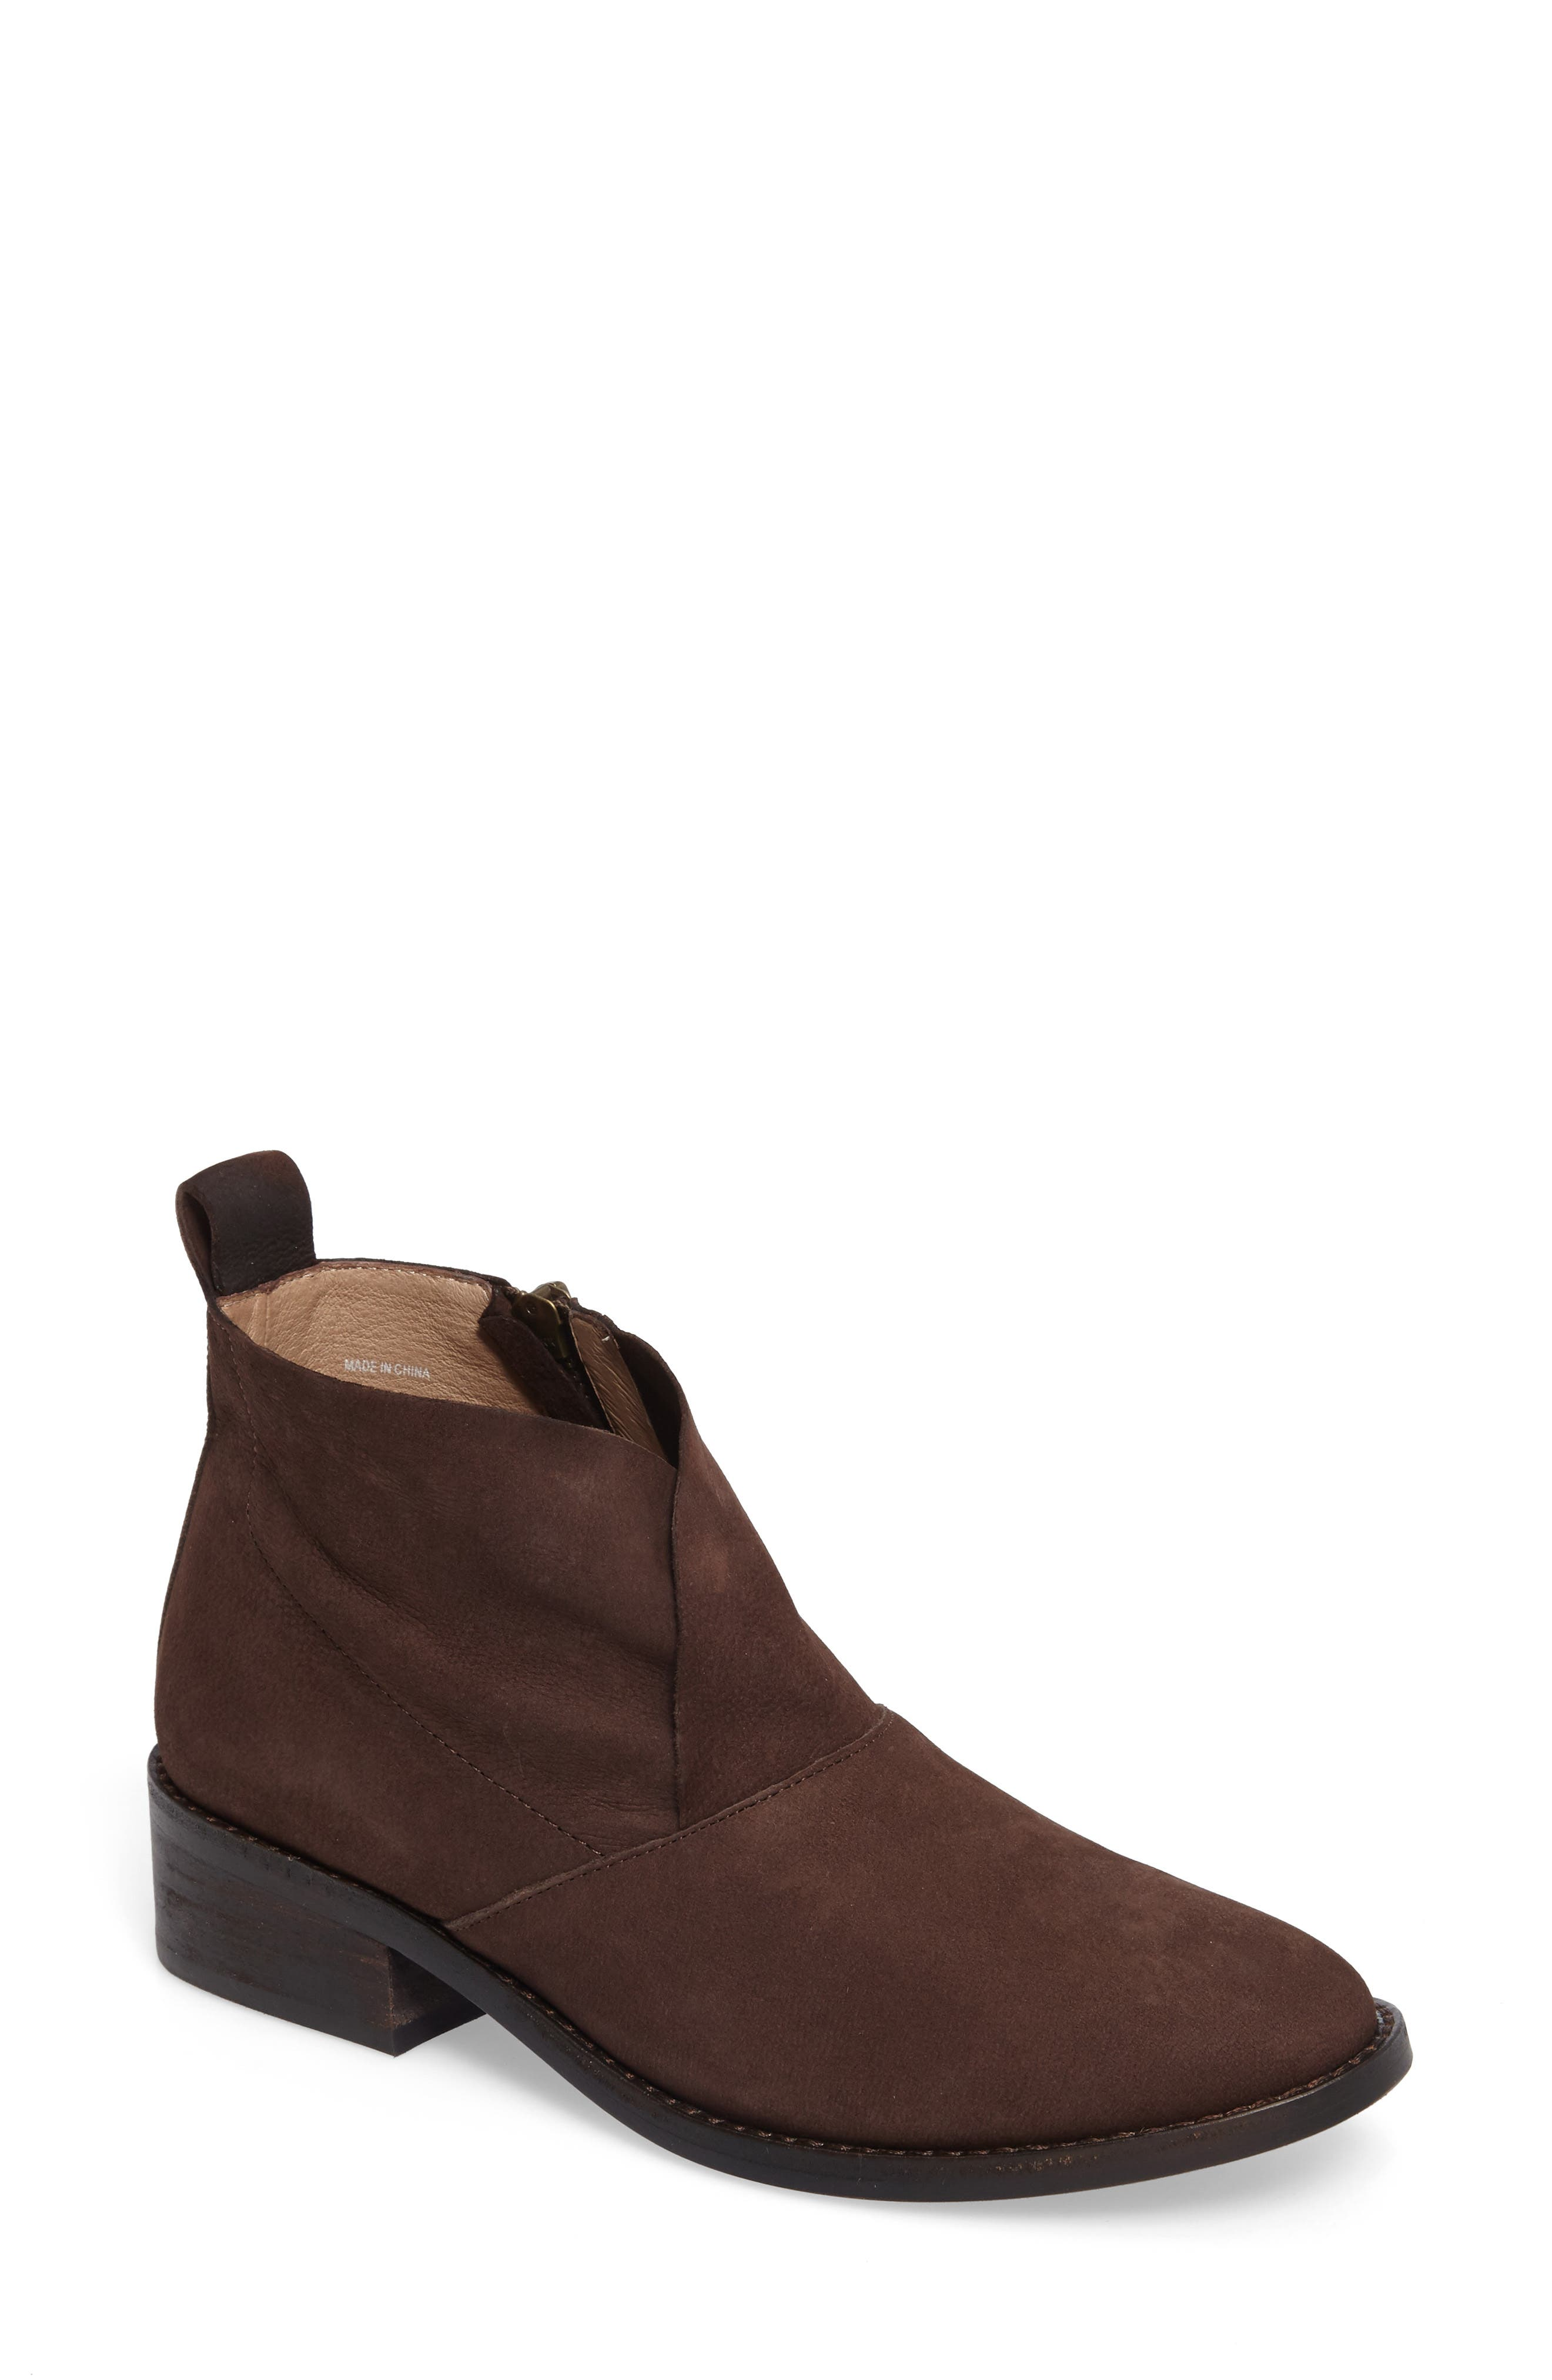 Alternate Image 1 Selected - Eileen Fisher Keith Bootie (Women)